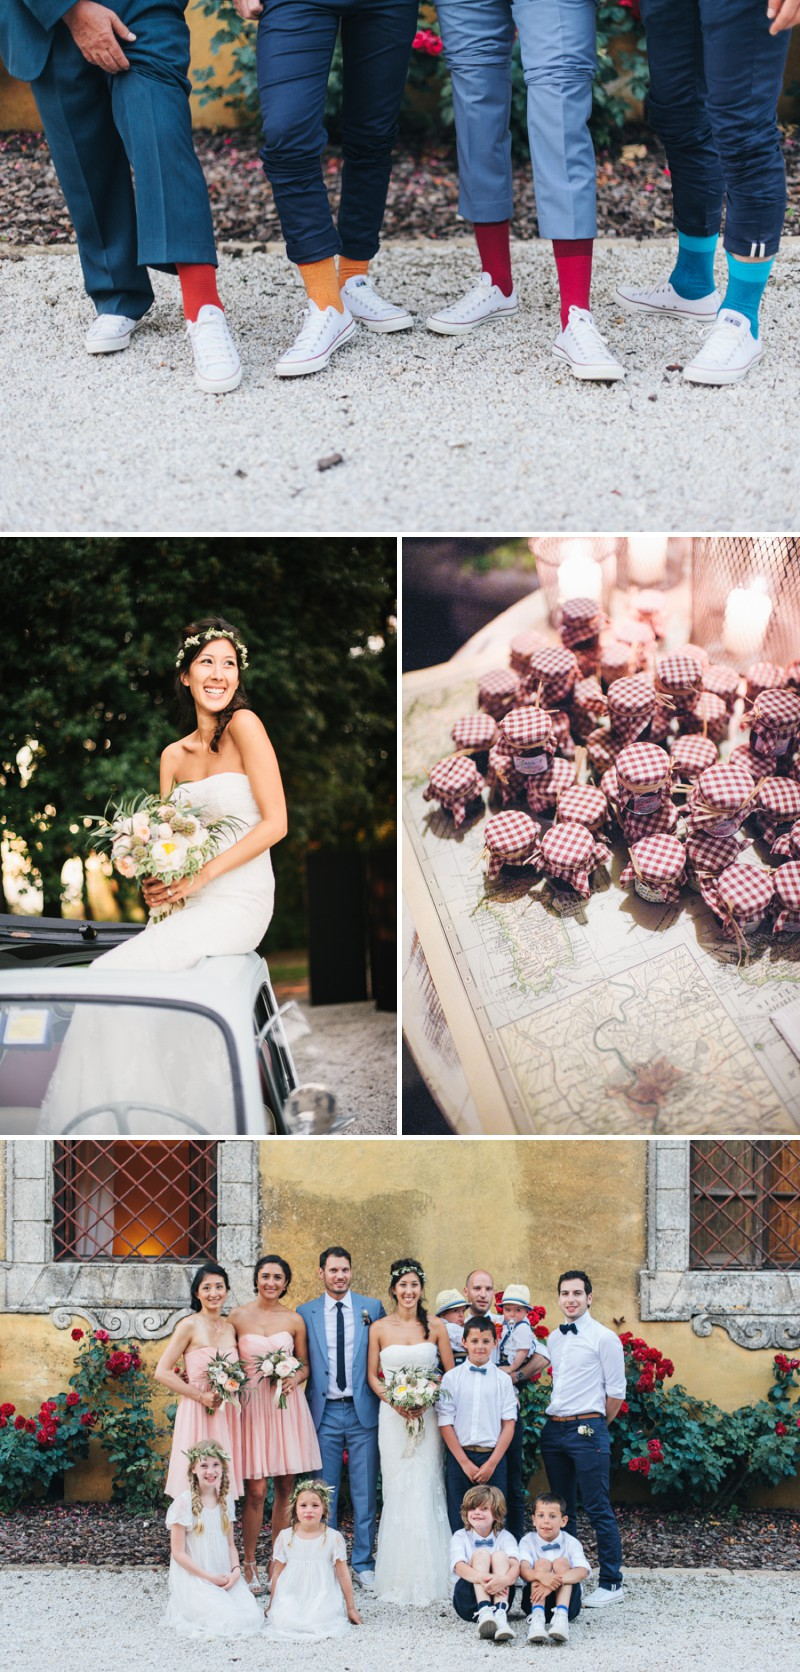 A Beautiful Italian Destination Wedding At Villa Di Ulignano With A Pronovias Dress And A Flower Wreath And A Rose Bouquet By Lisa Poggi Photography._0011